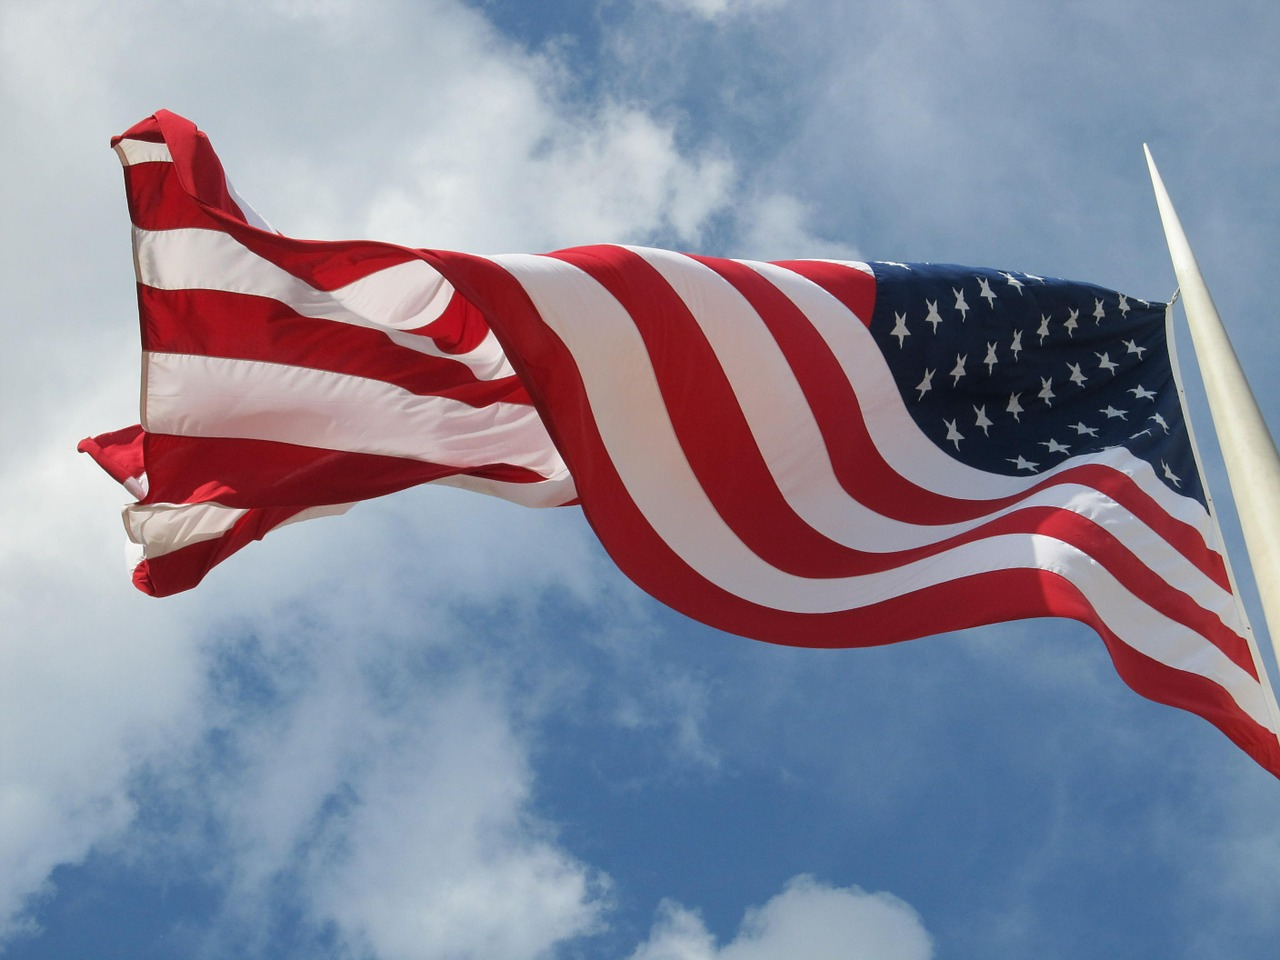 FATCA Regulations Mean Non-Resident Americans Can't Invest In U.S. Mutual Funds